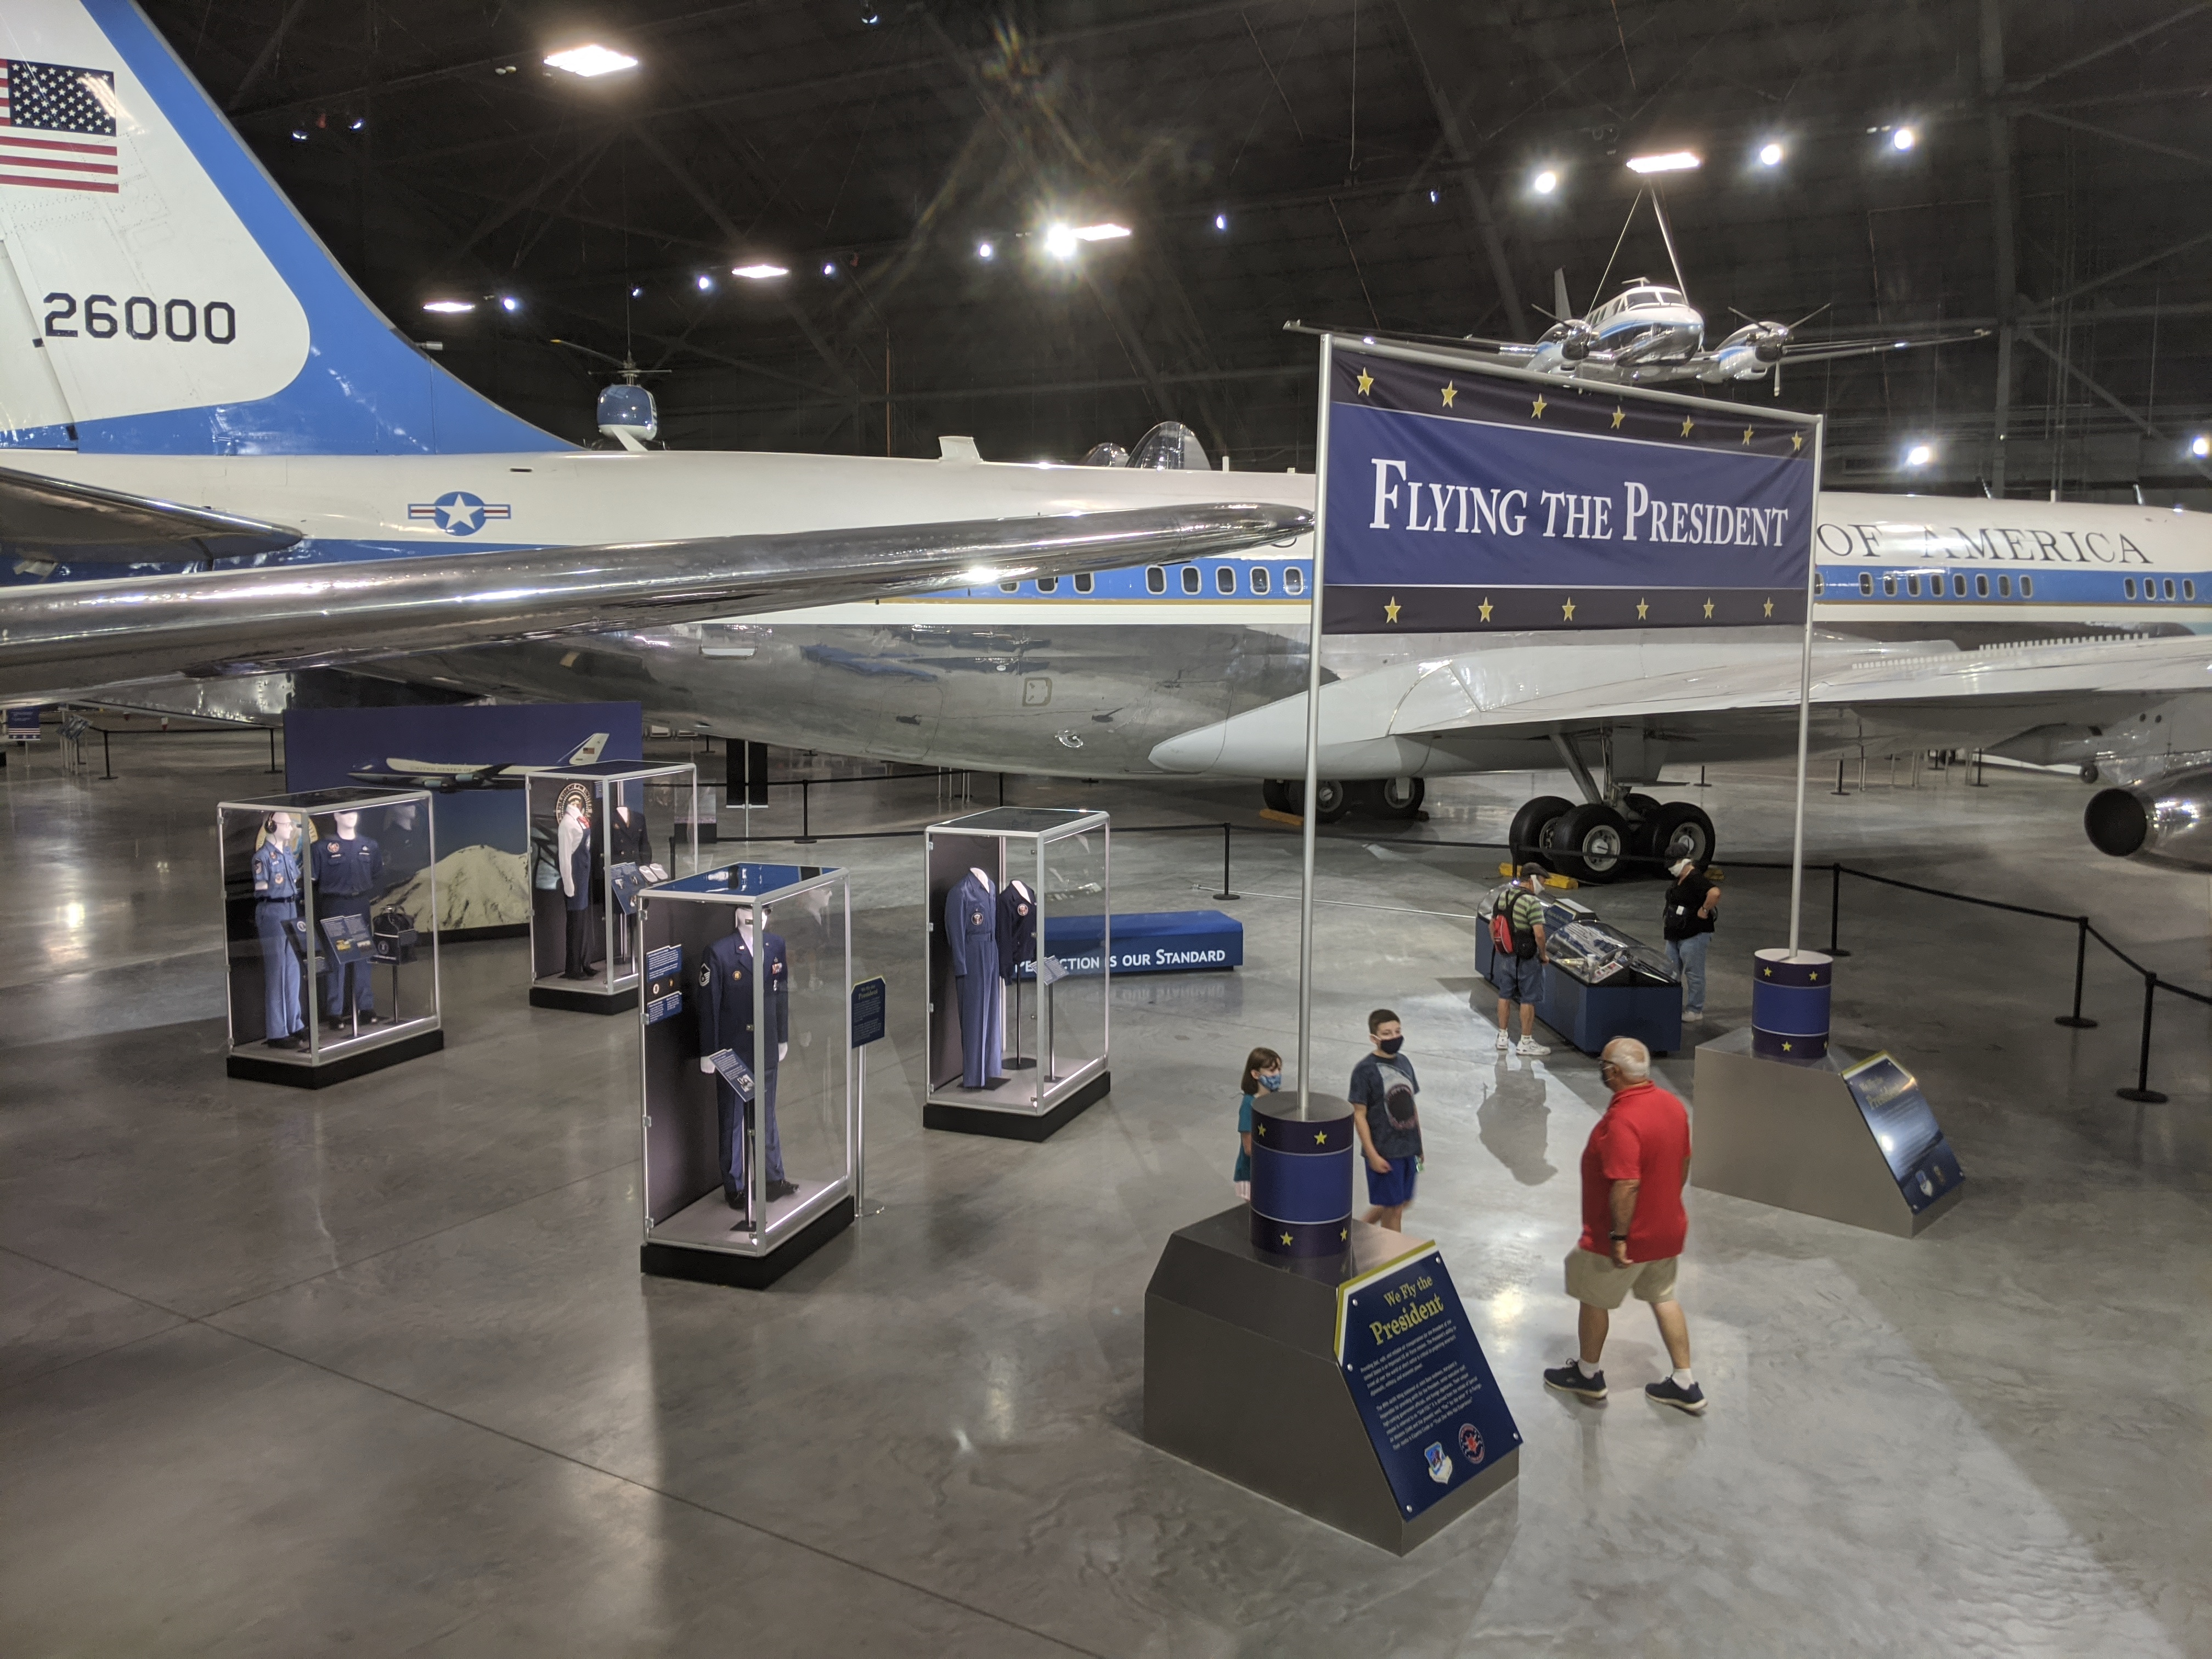 Overhead picture of the Flying the President exhibit